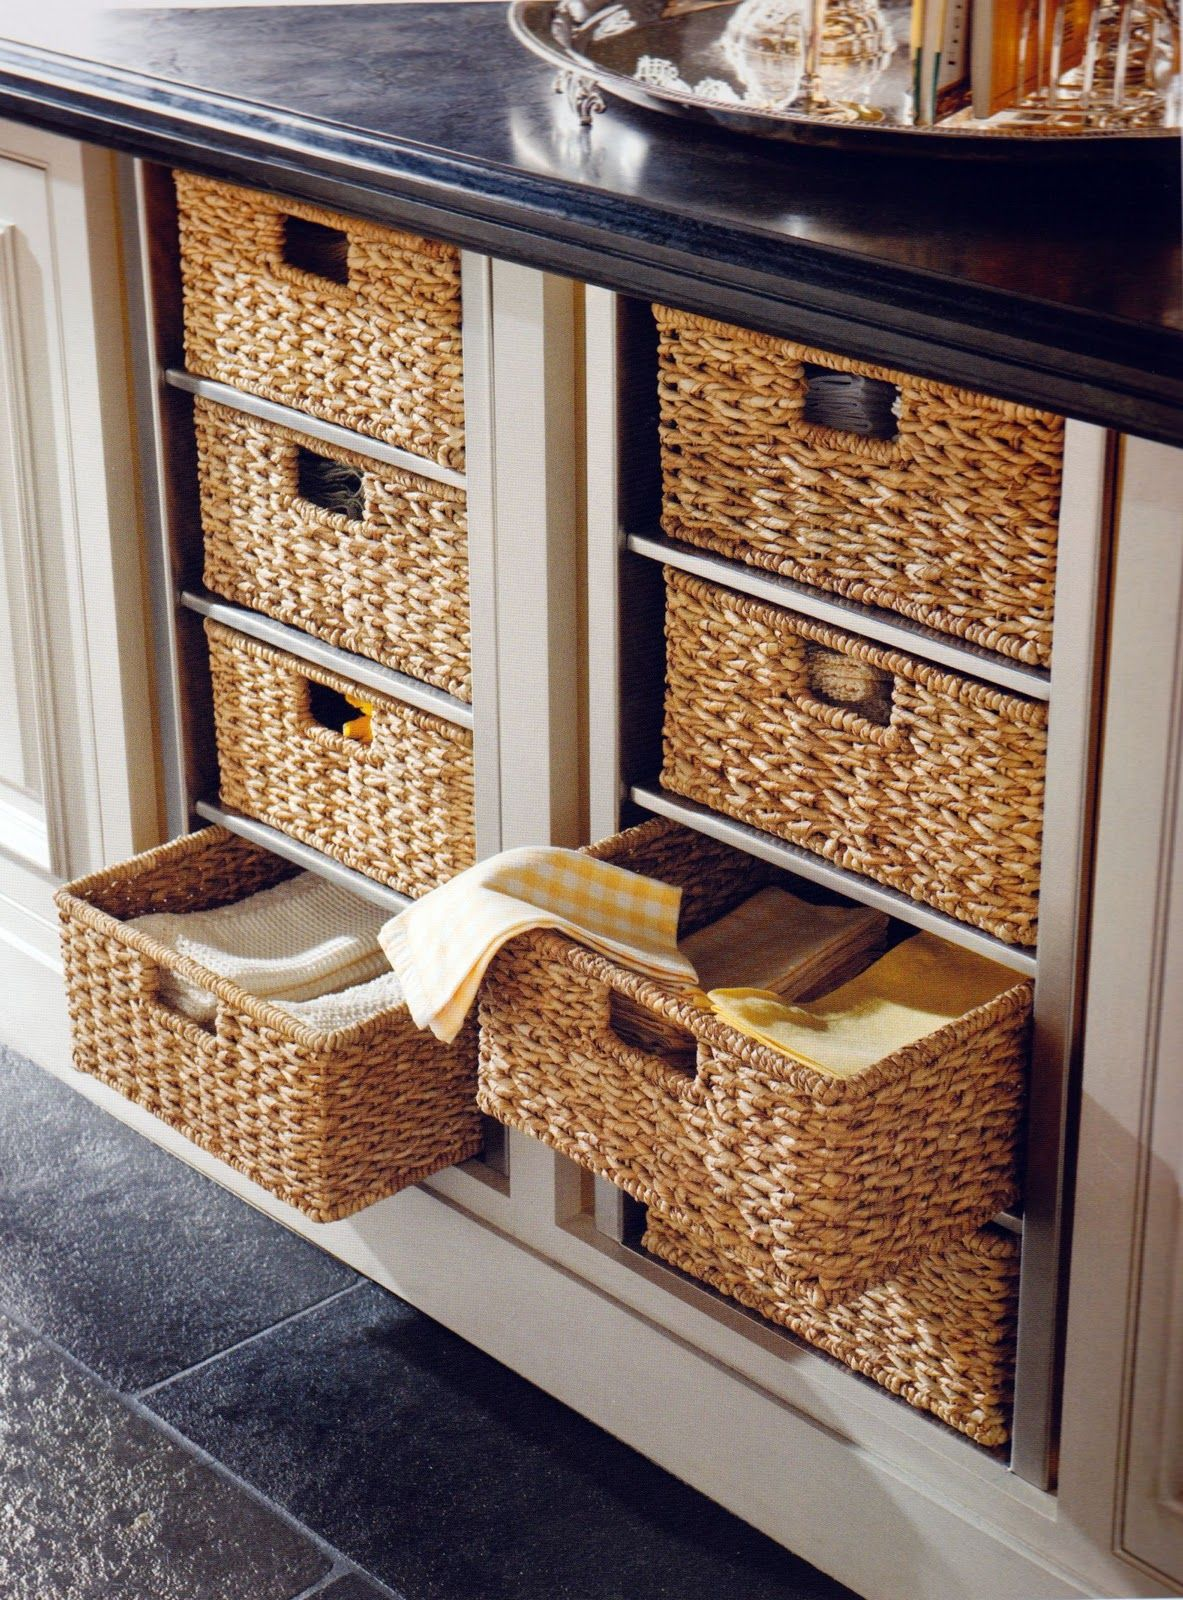 Basket Drawers For Where The Dishwasher Used To Be Good Idea Id